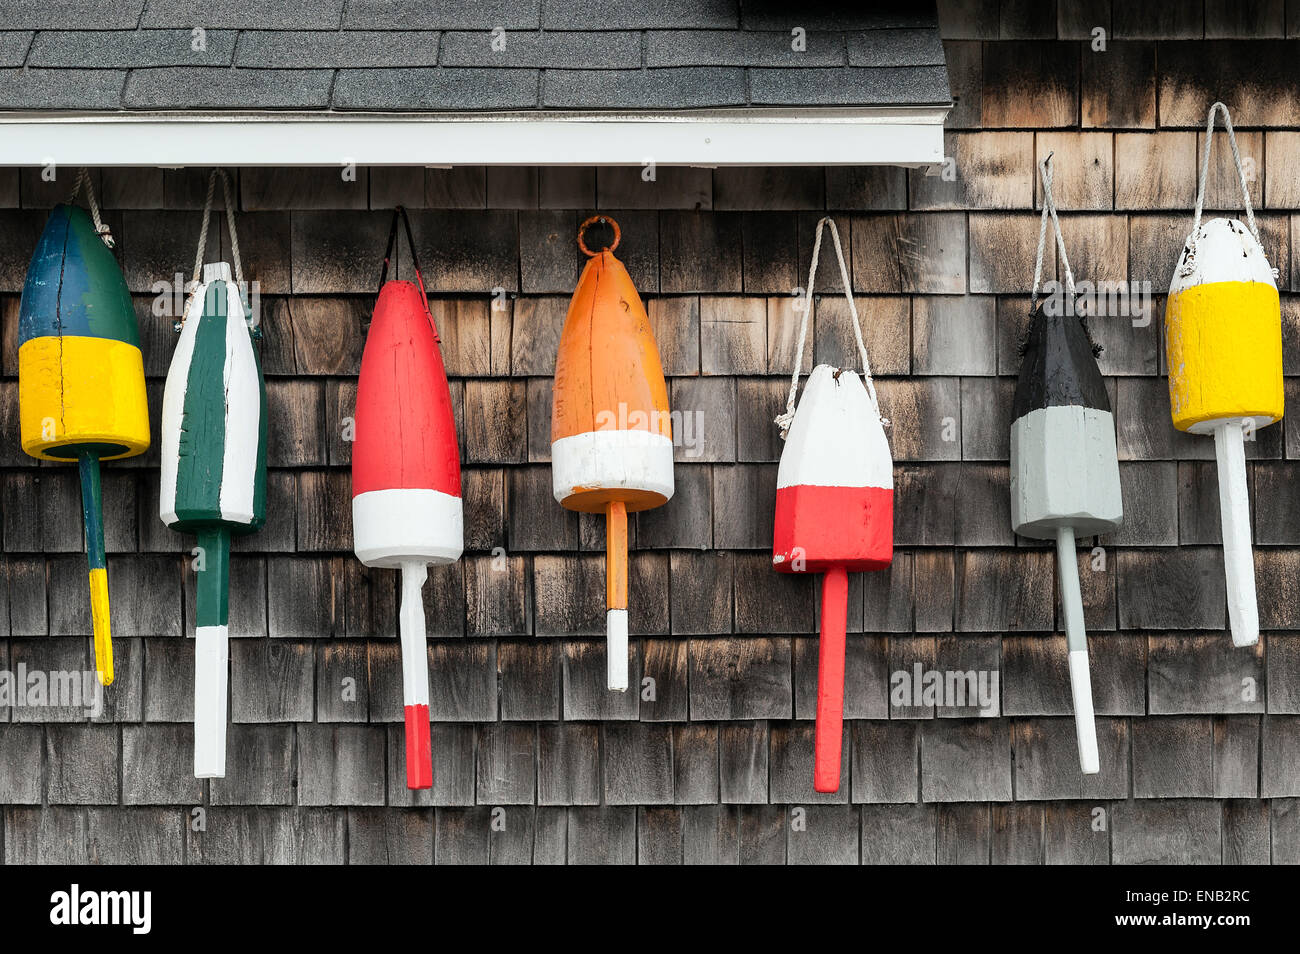 Buoys hung on the facade of a rustic coastal shack, Maine, USA - Stock Image